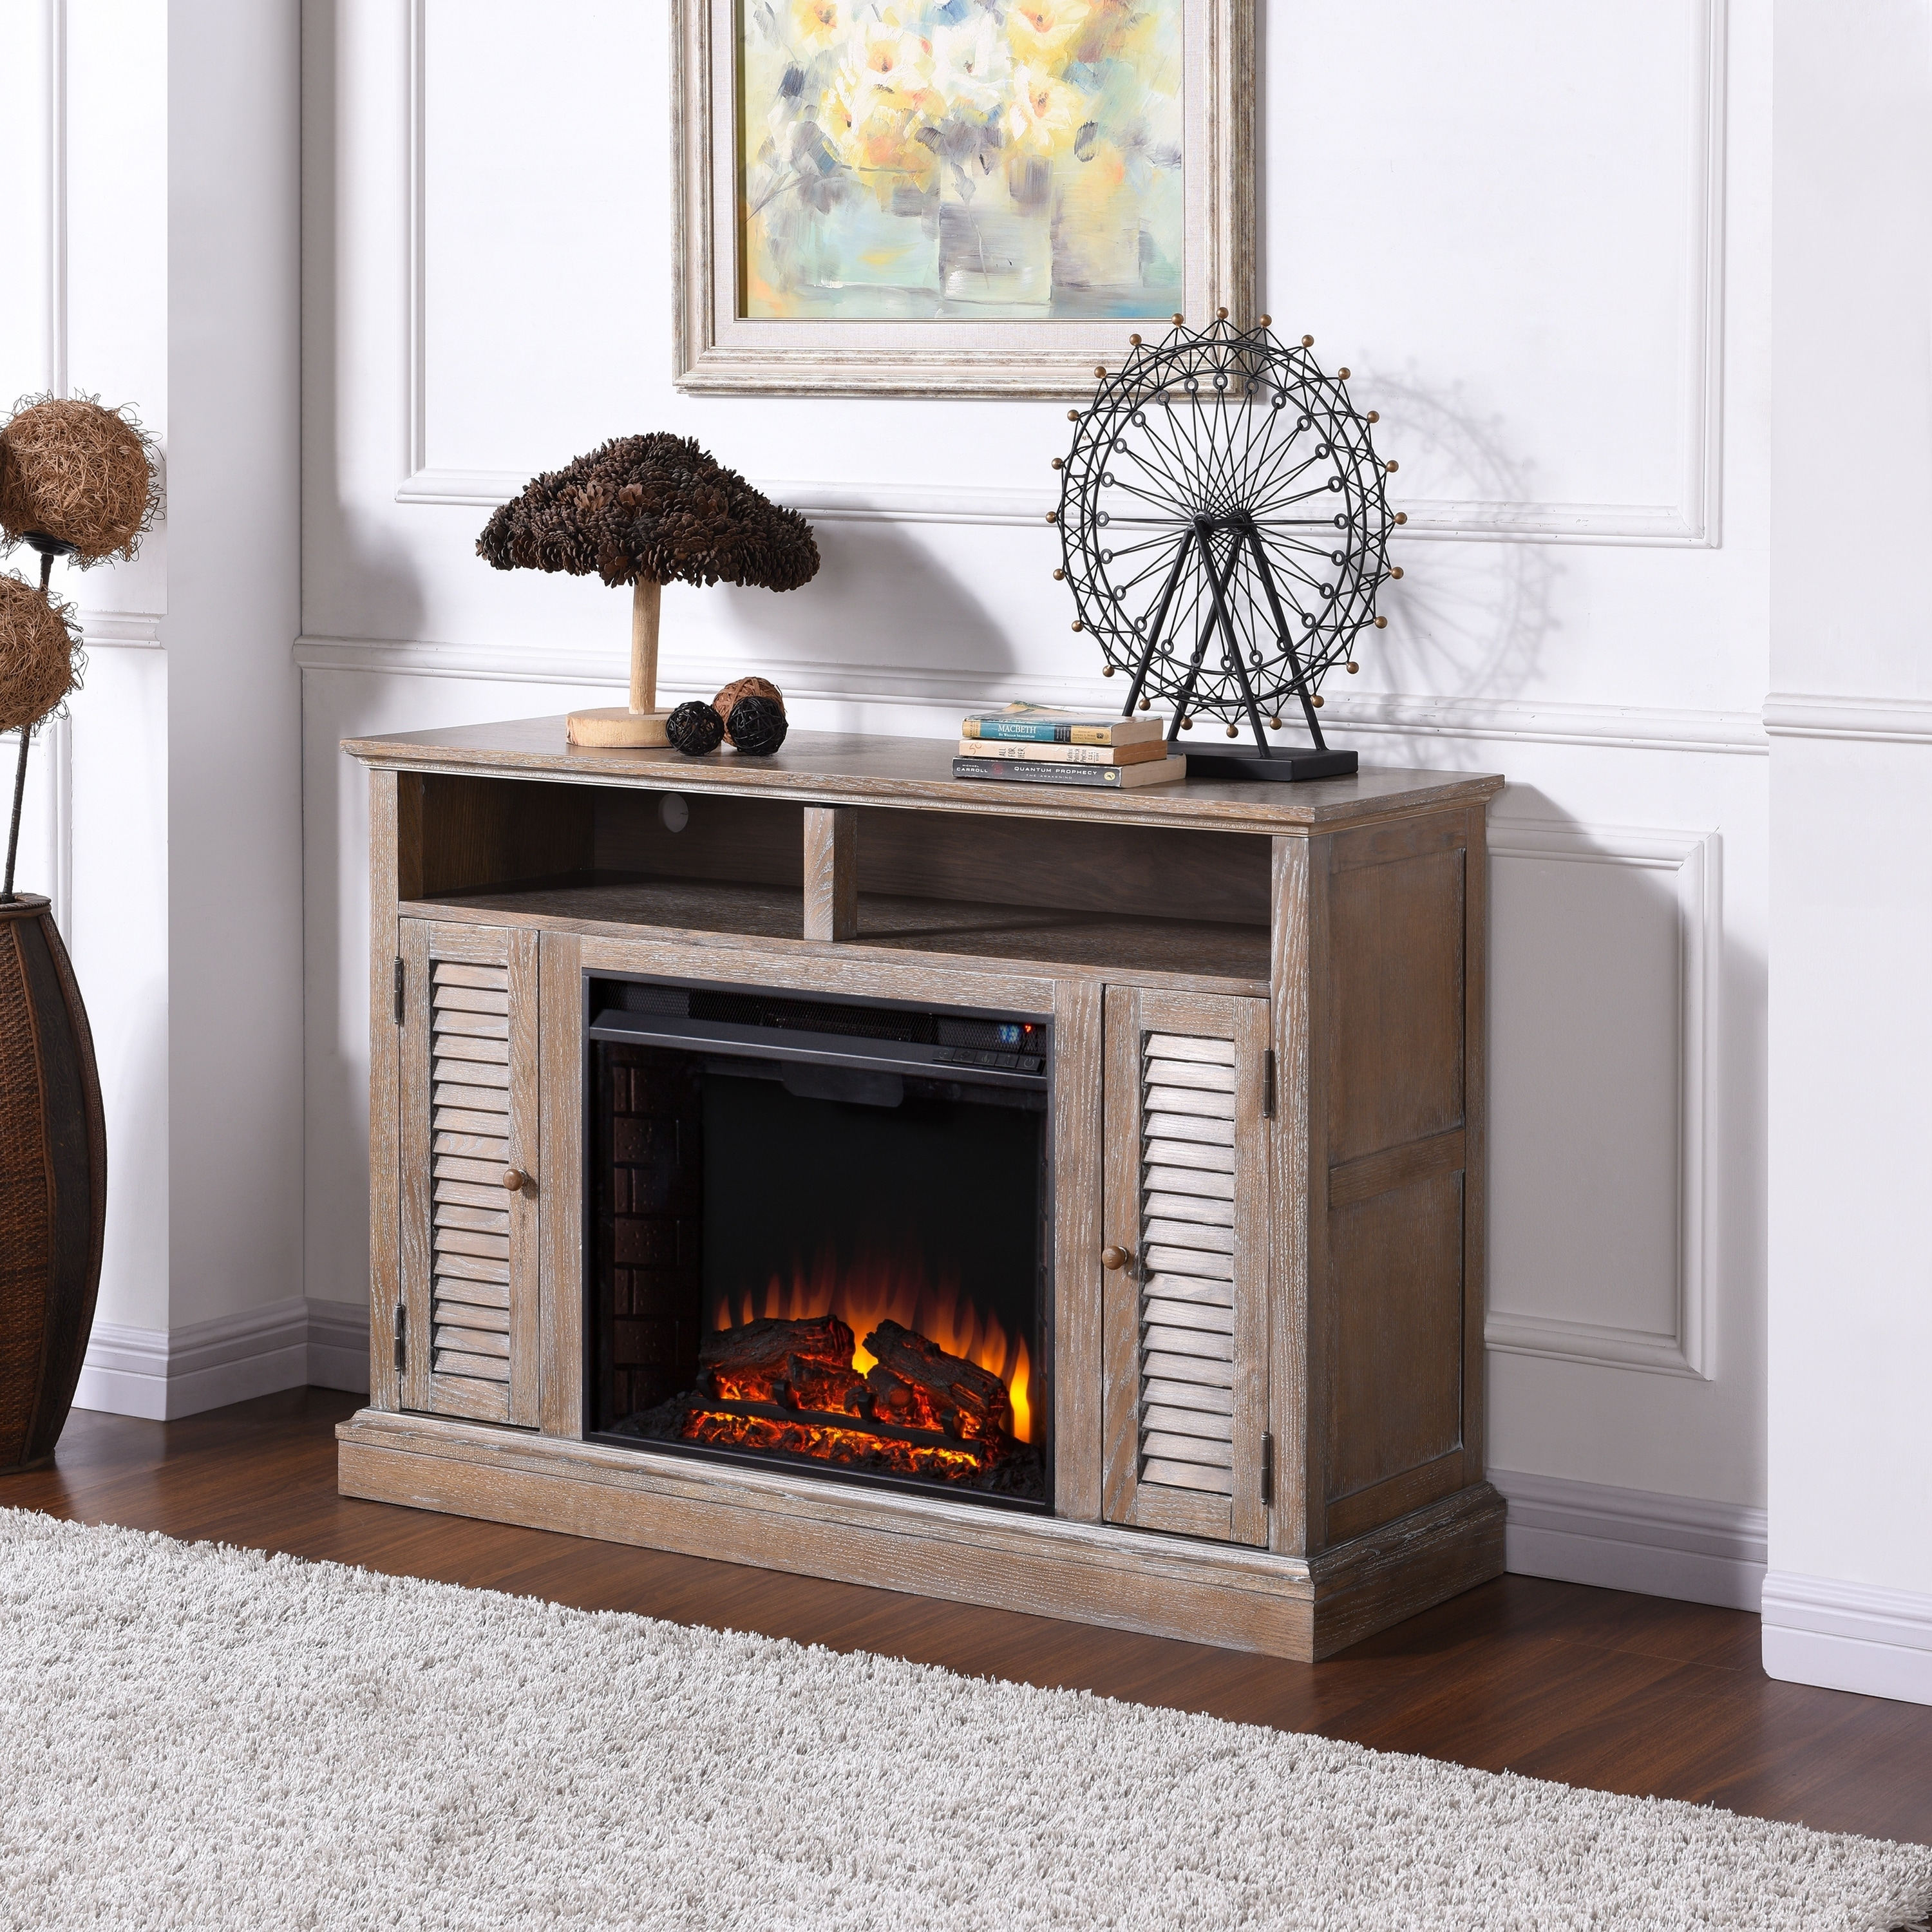 legends tv expand click fireplace white electric to stand p furniture oak creek golden